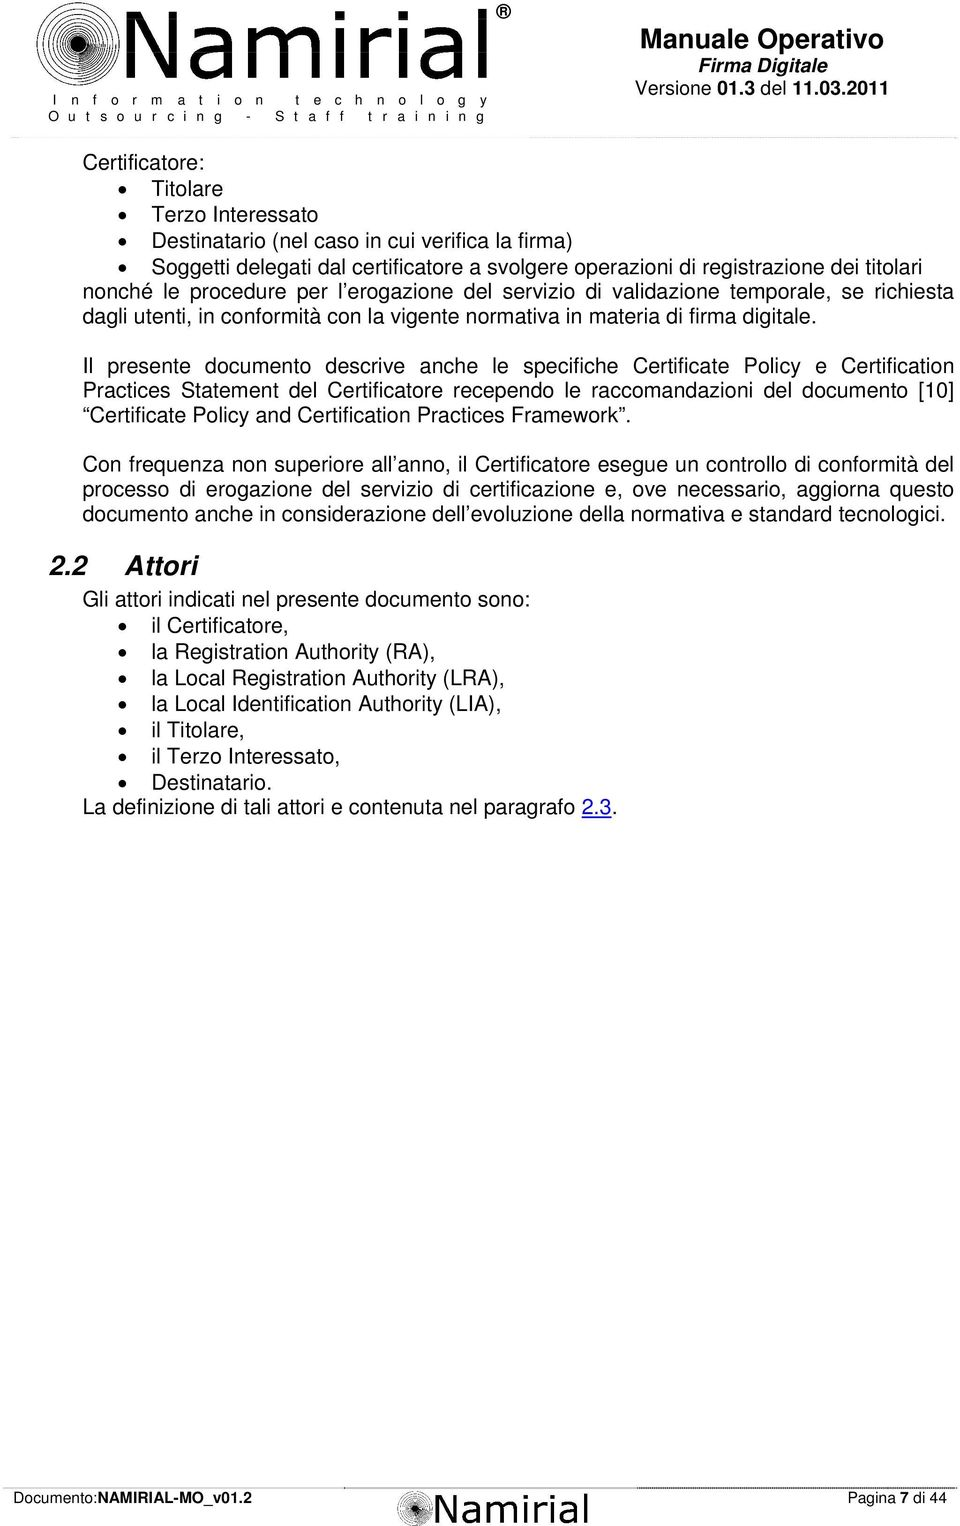 Il presente documento descrive anche le specifiche Certificate Policy e Certification Practices Statement del Certificatore recependo le raccomandazioni del documento [10] Certificate Policy and